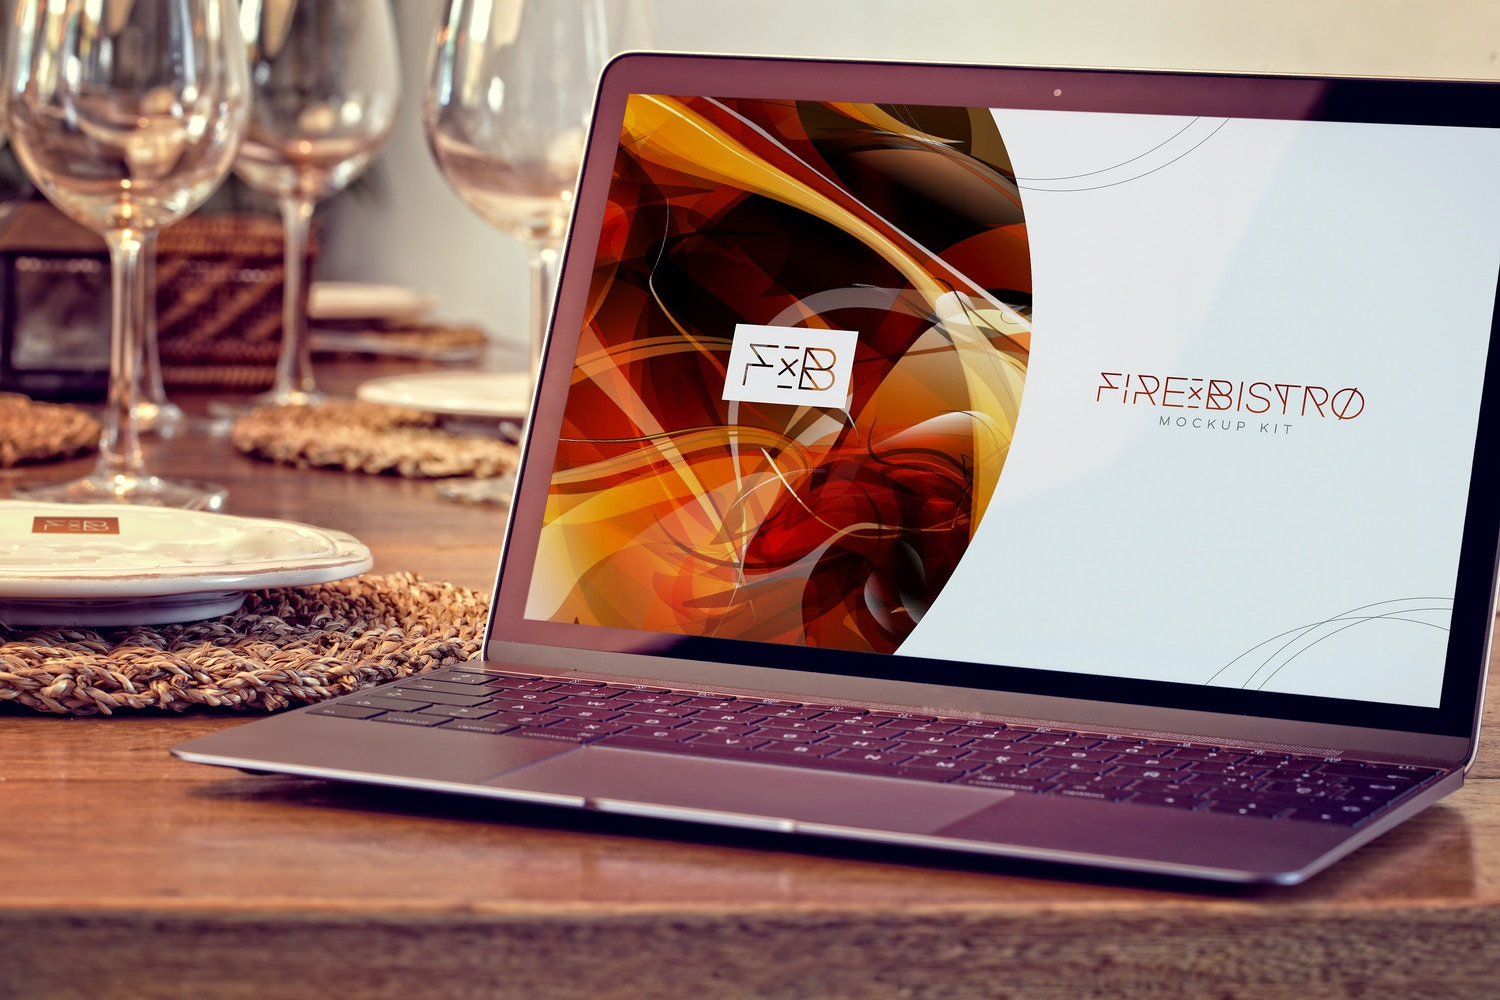 Macbook Mockup 01 (2) por 4to Pixel en Original Mockups